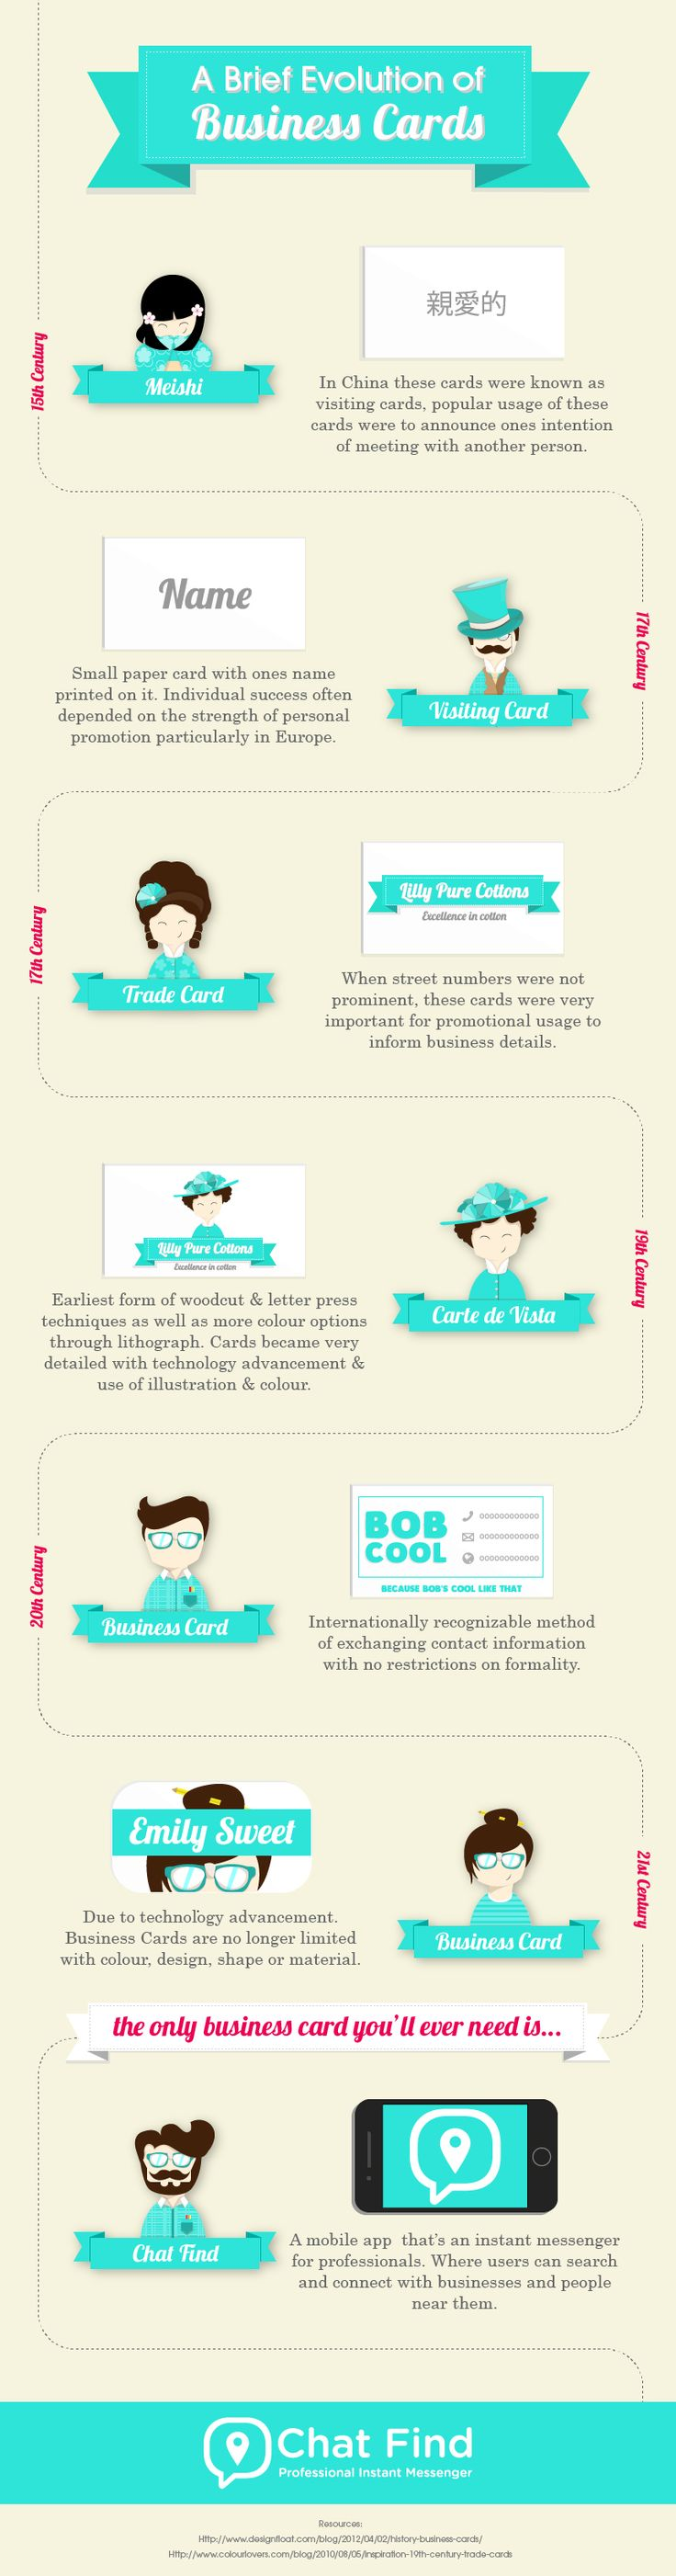 Brief history of business cards. #infographic #business #timeline #history #profesional #creative #design #fun #illustration